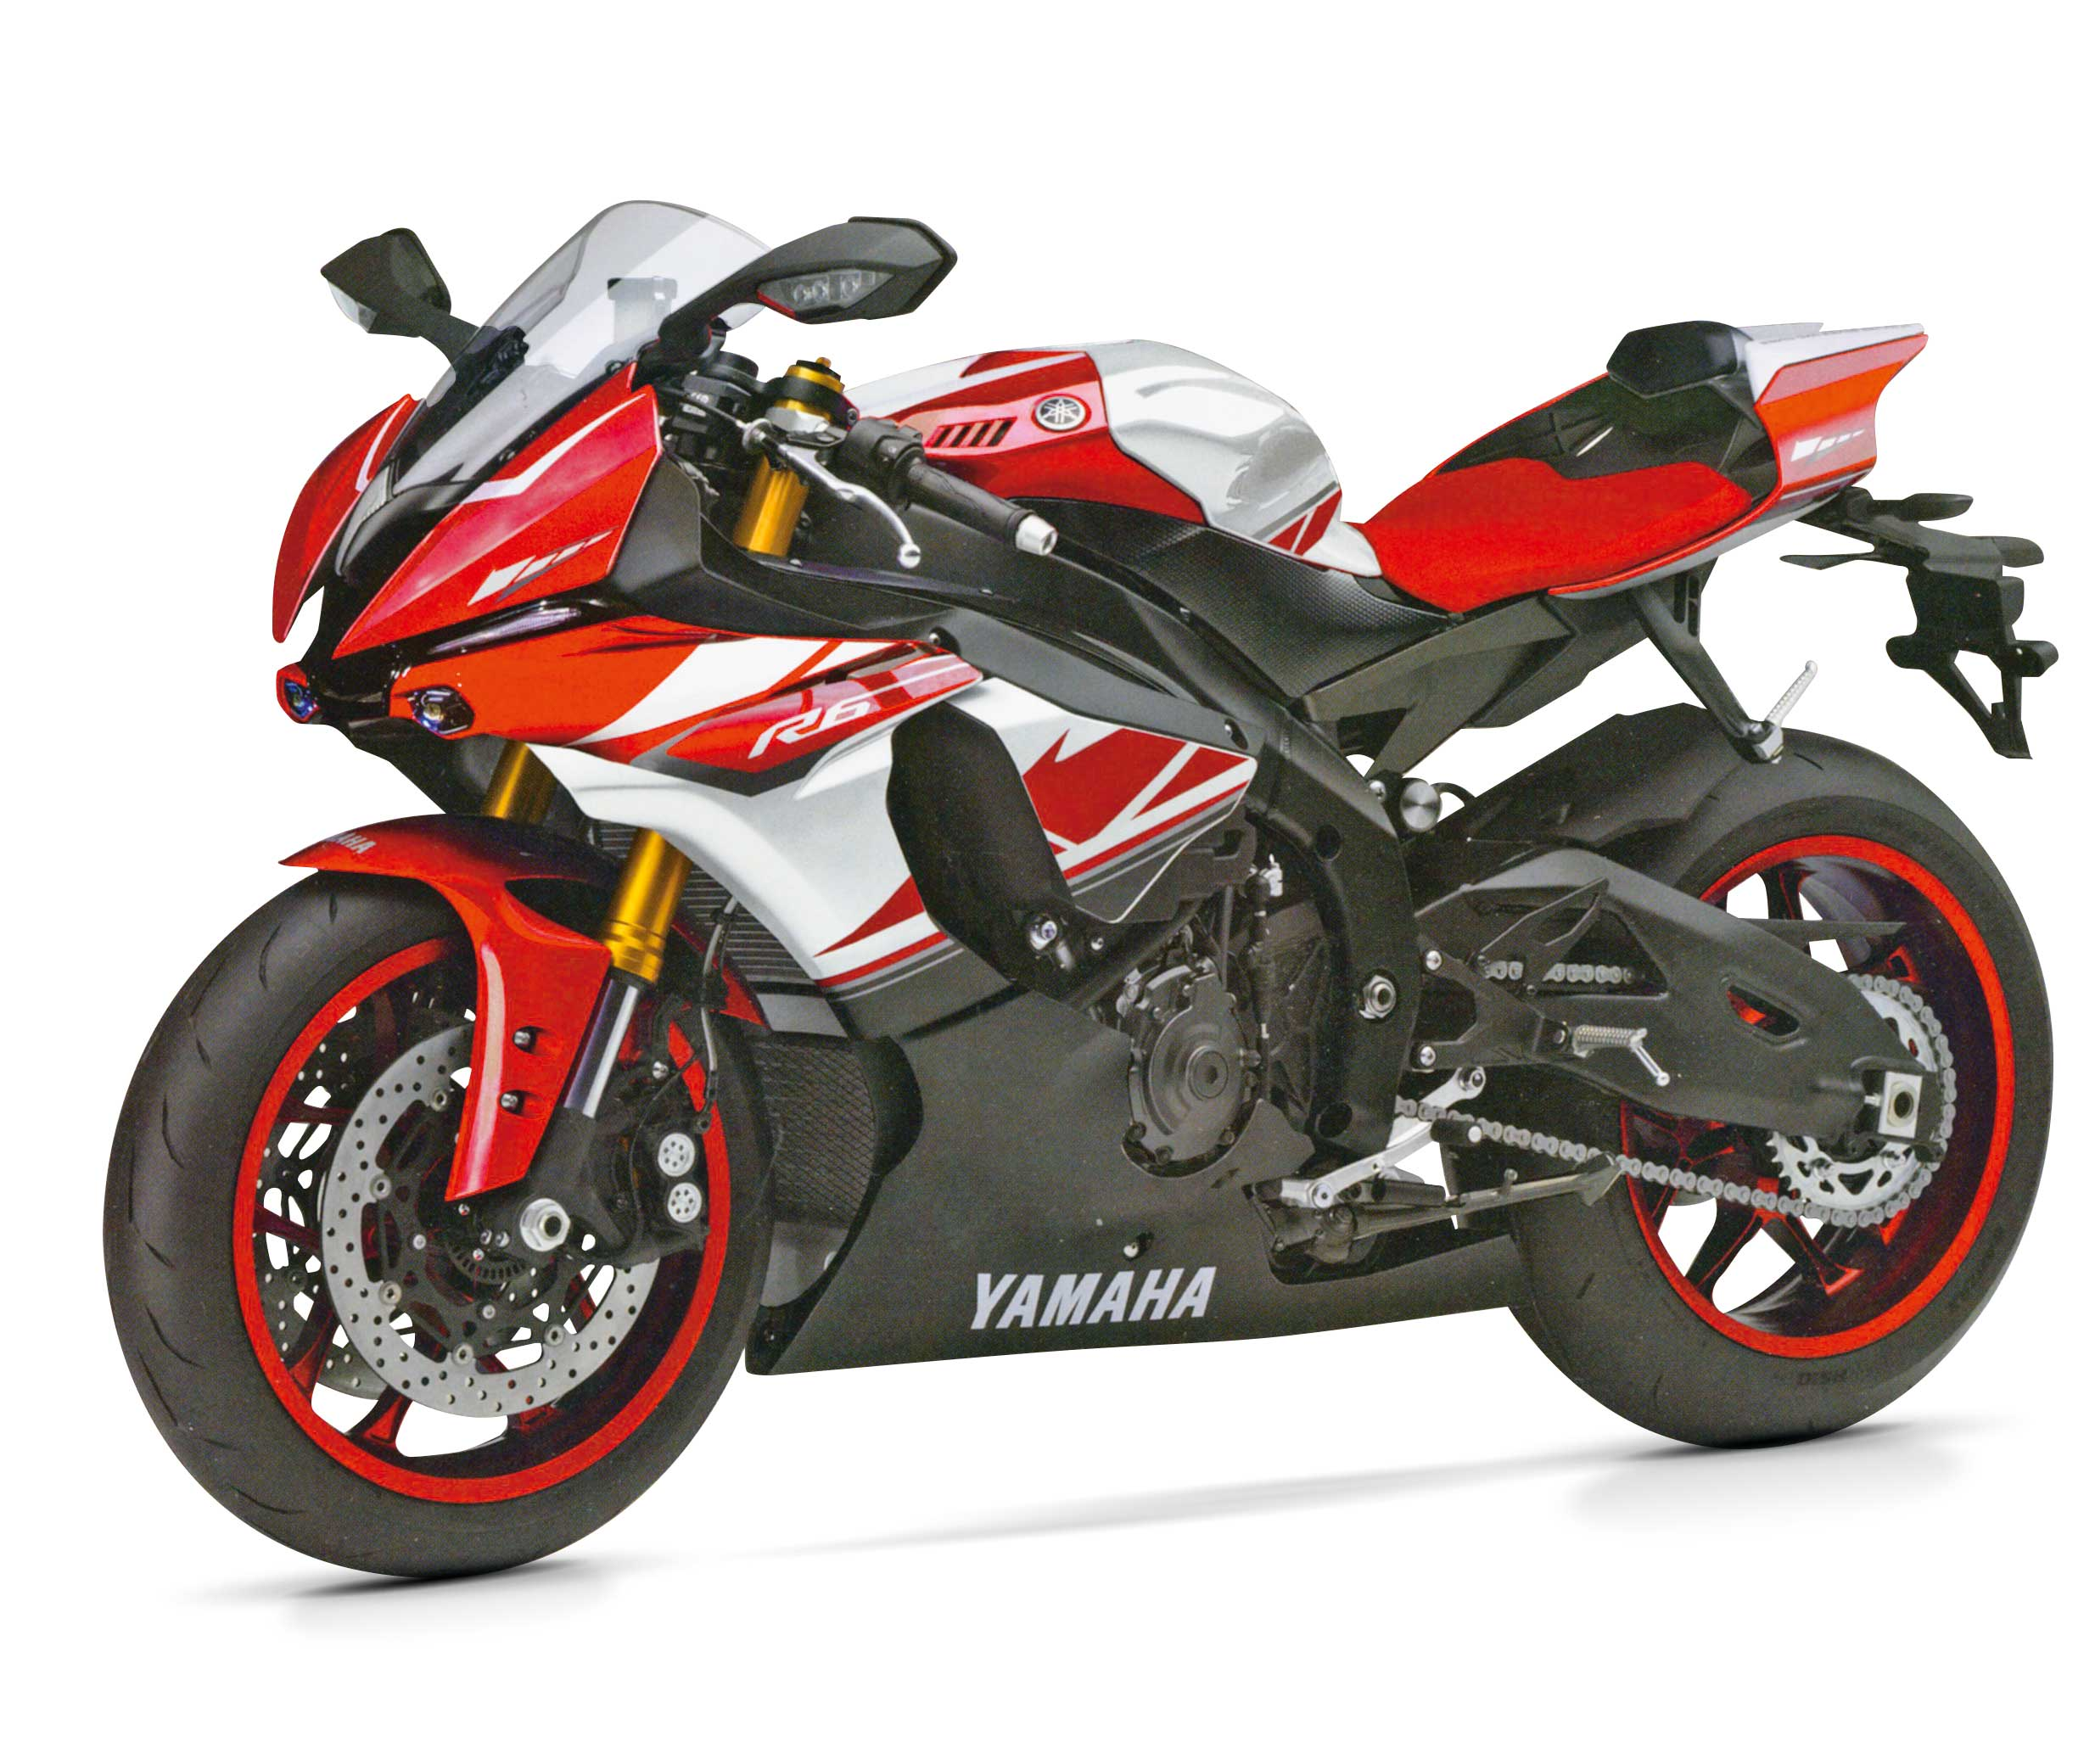 Yamaha r6 photo - 4